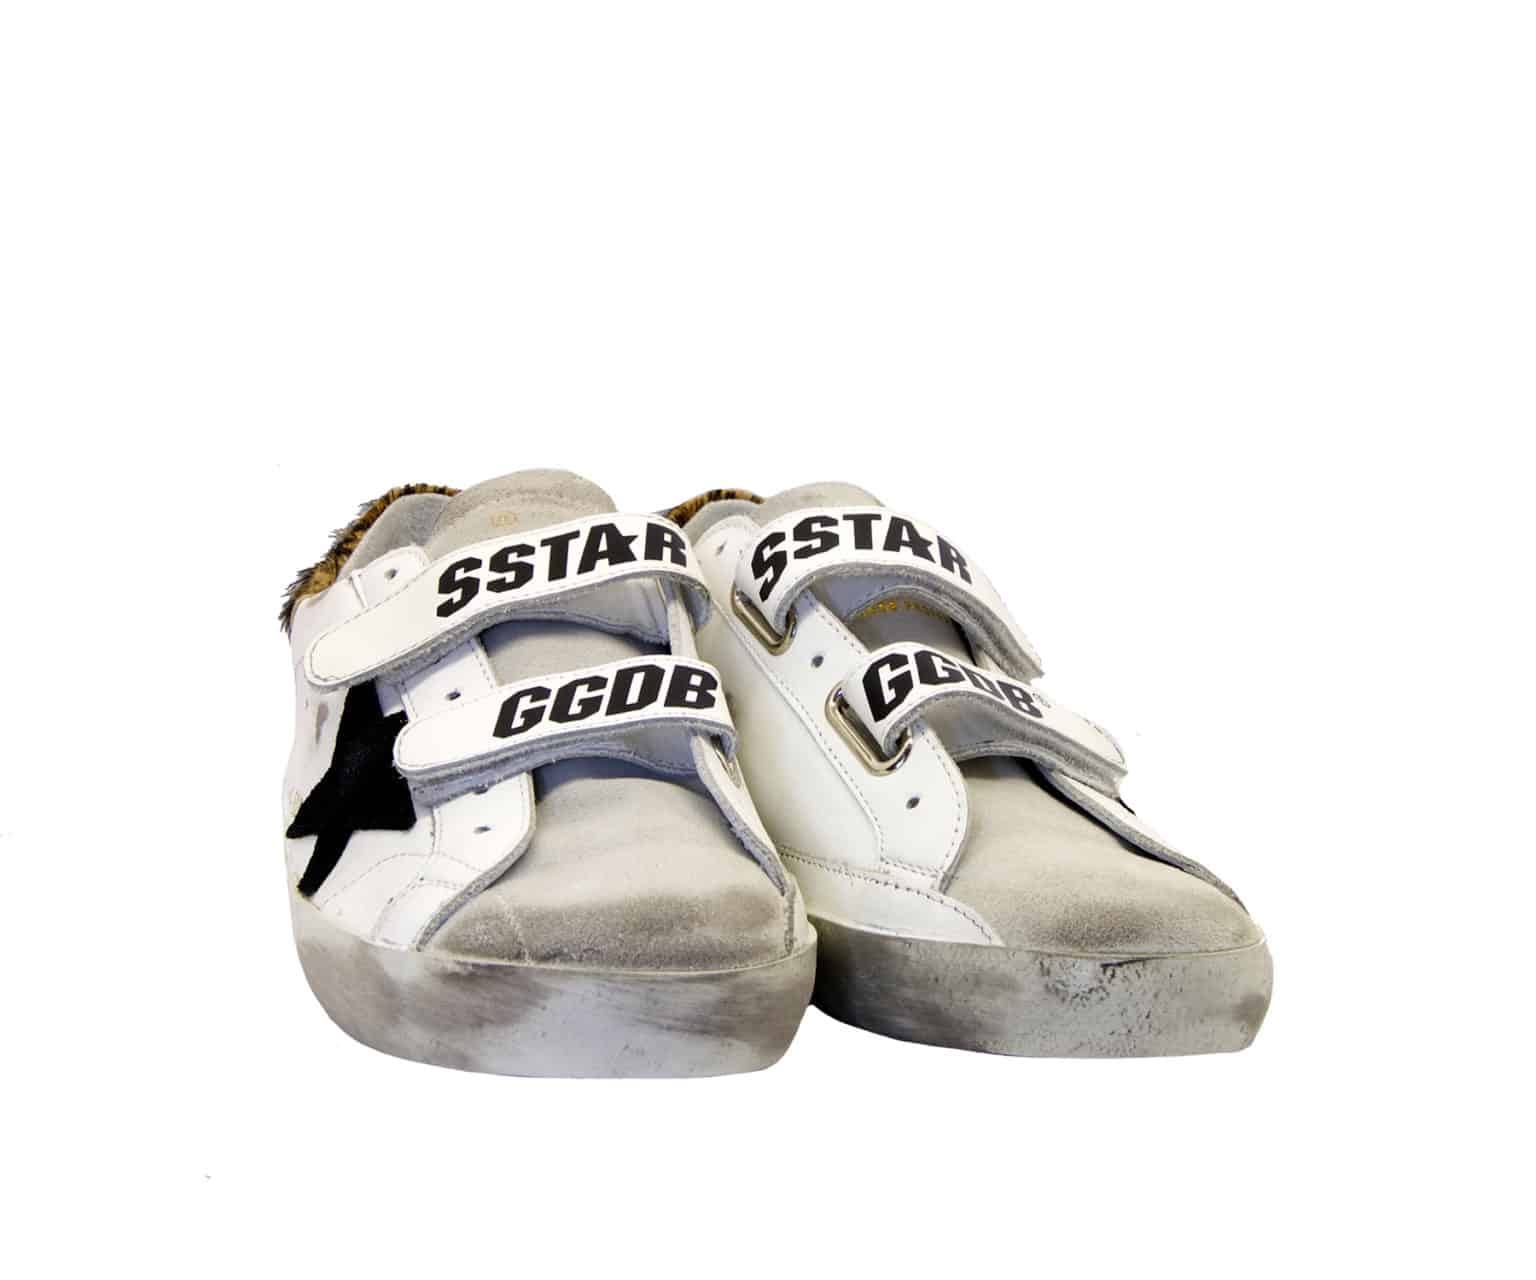 GOLDEN GOOSE DONNA Donna SNEAKERS OLD SCHOOL BIANCO MACULATO 36, 37-2, 38-2, 39-2, 40, 35 immagine n. 2/4